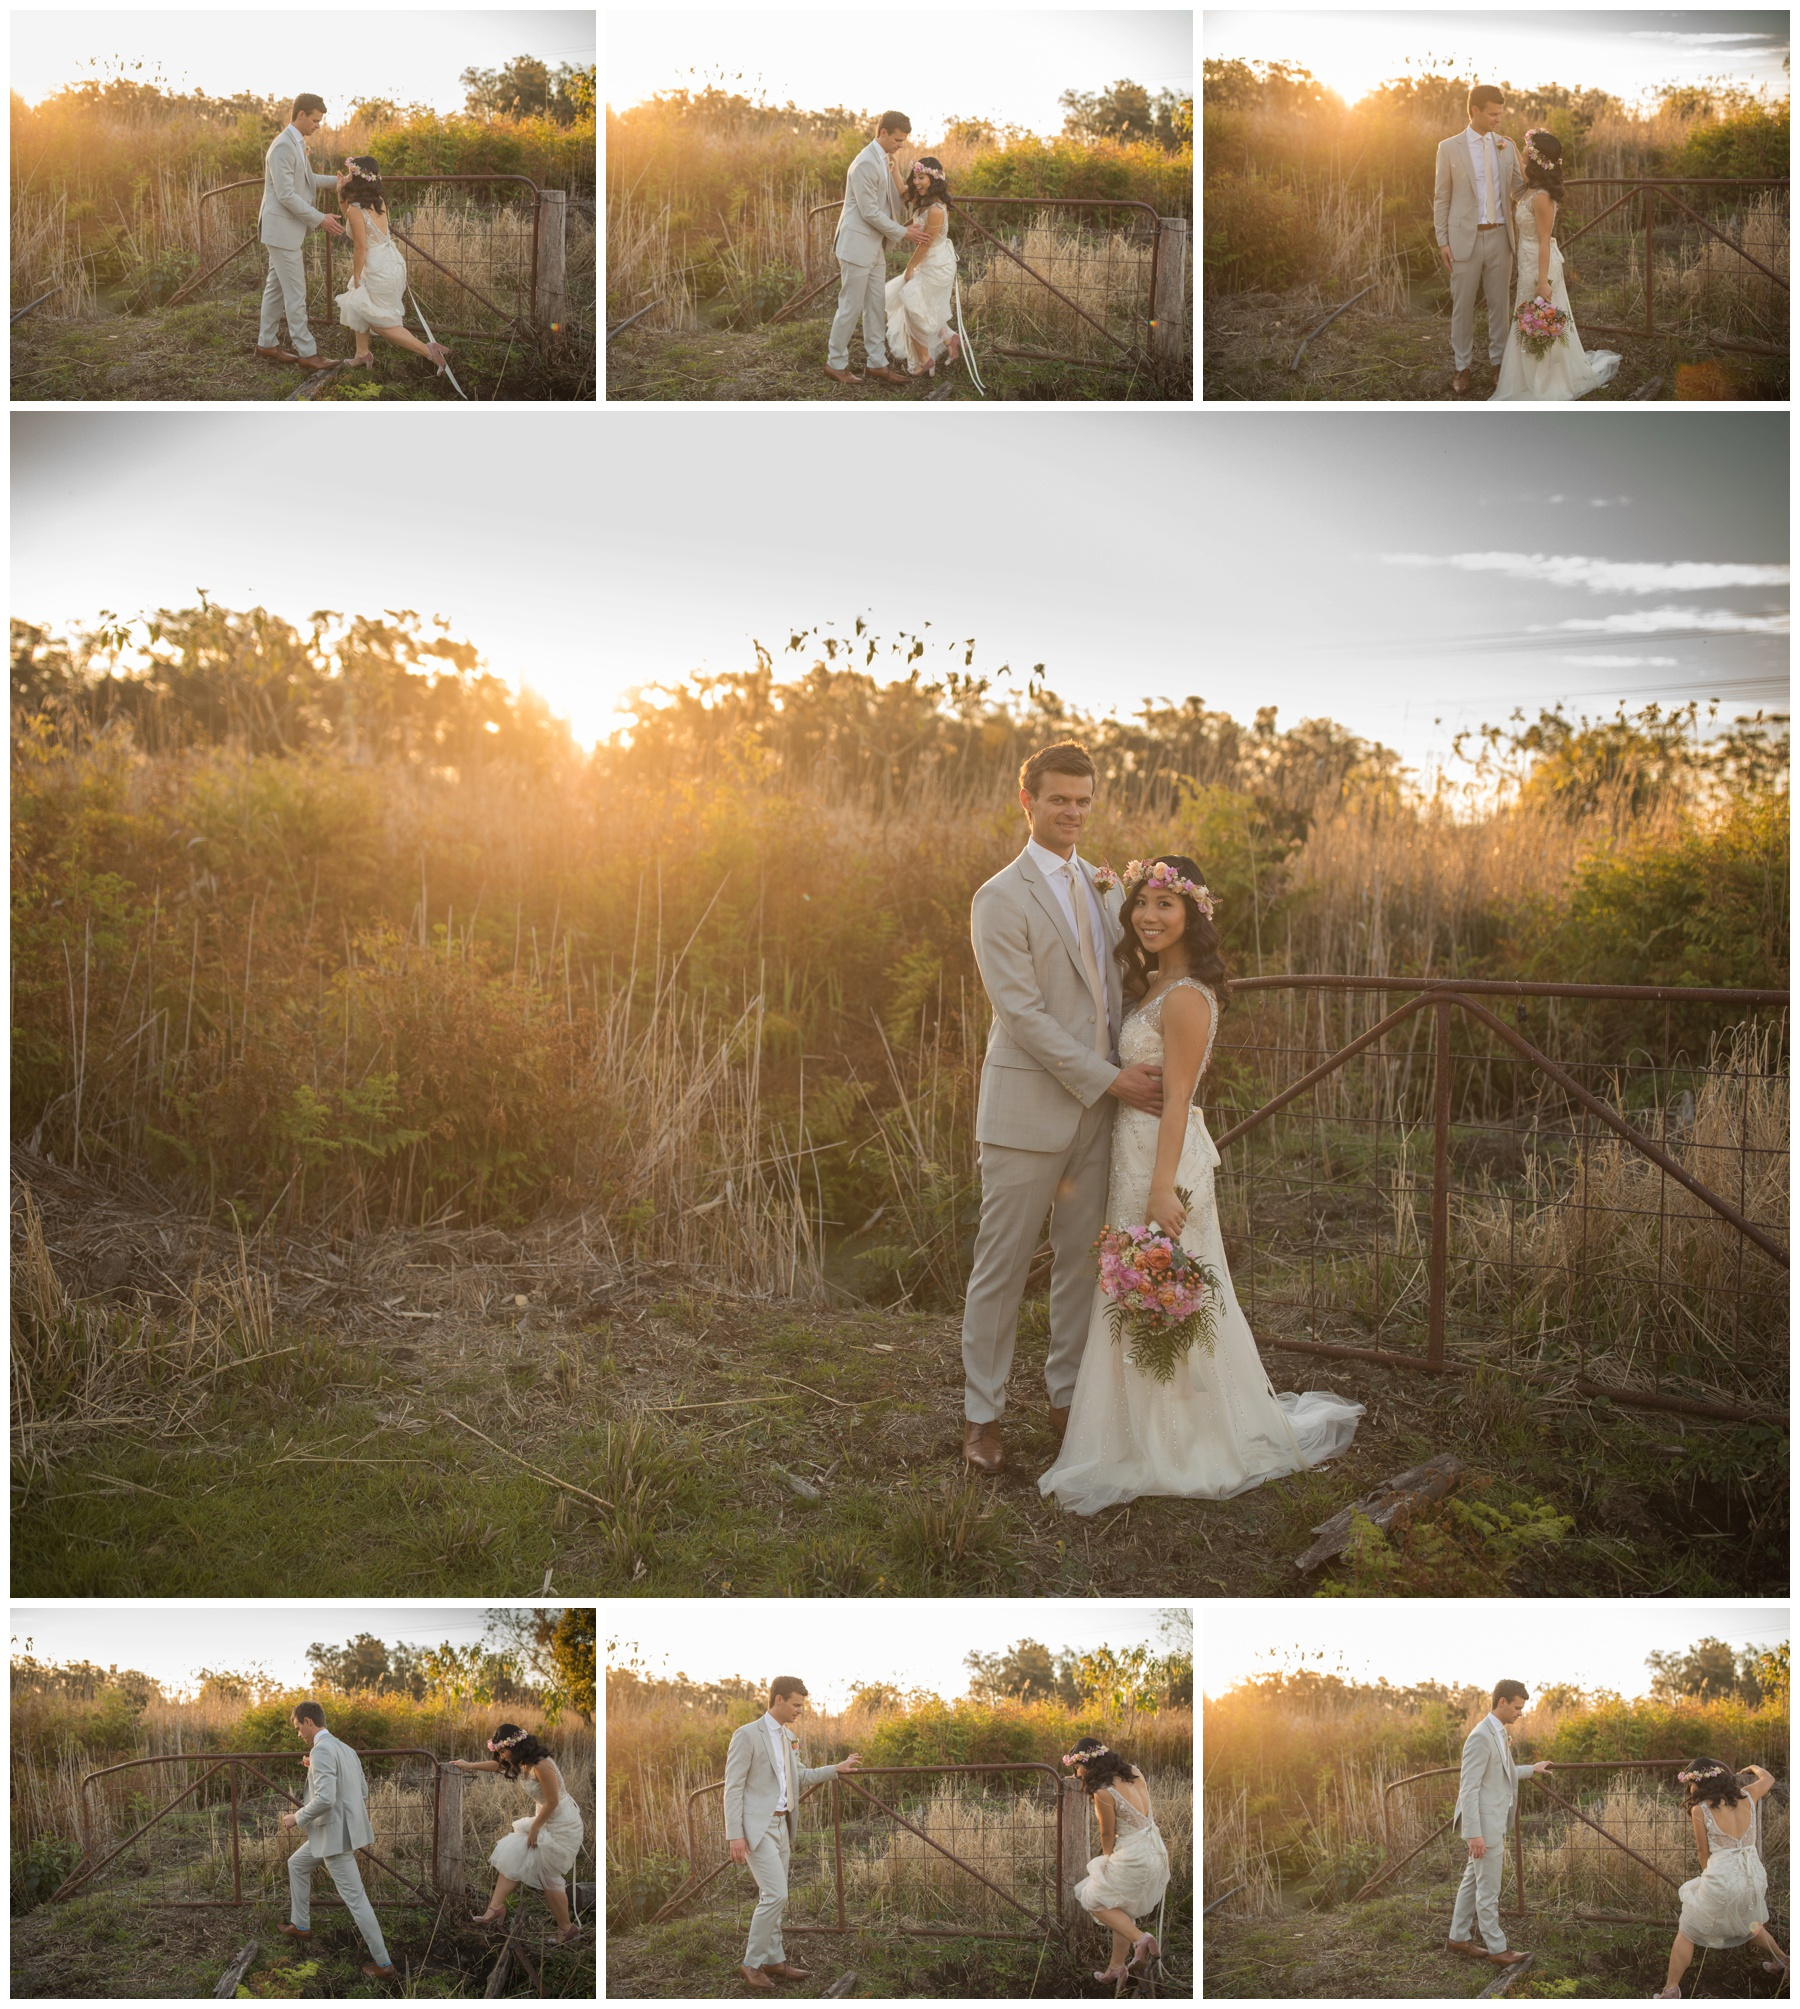 Country Wedding photographer, Nelson Bay wedding, Kangaroo Valley wedding photographer, Southern highlands photographer, farm wedding photographer